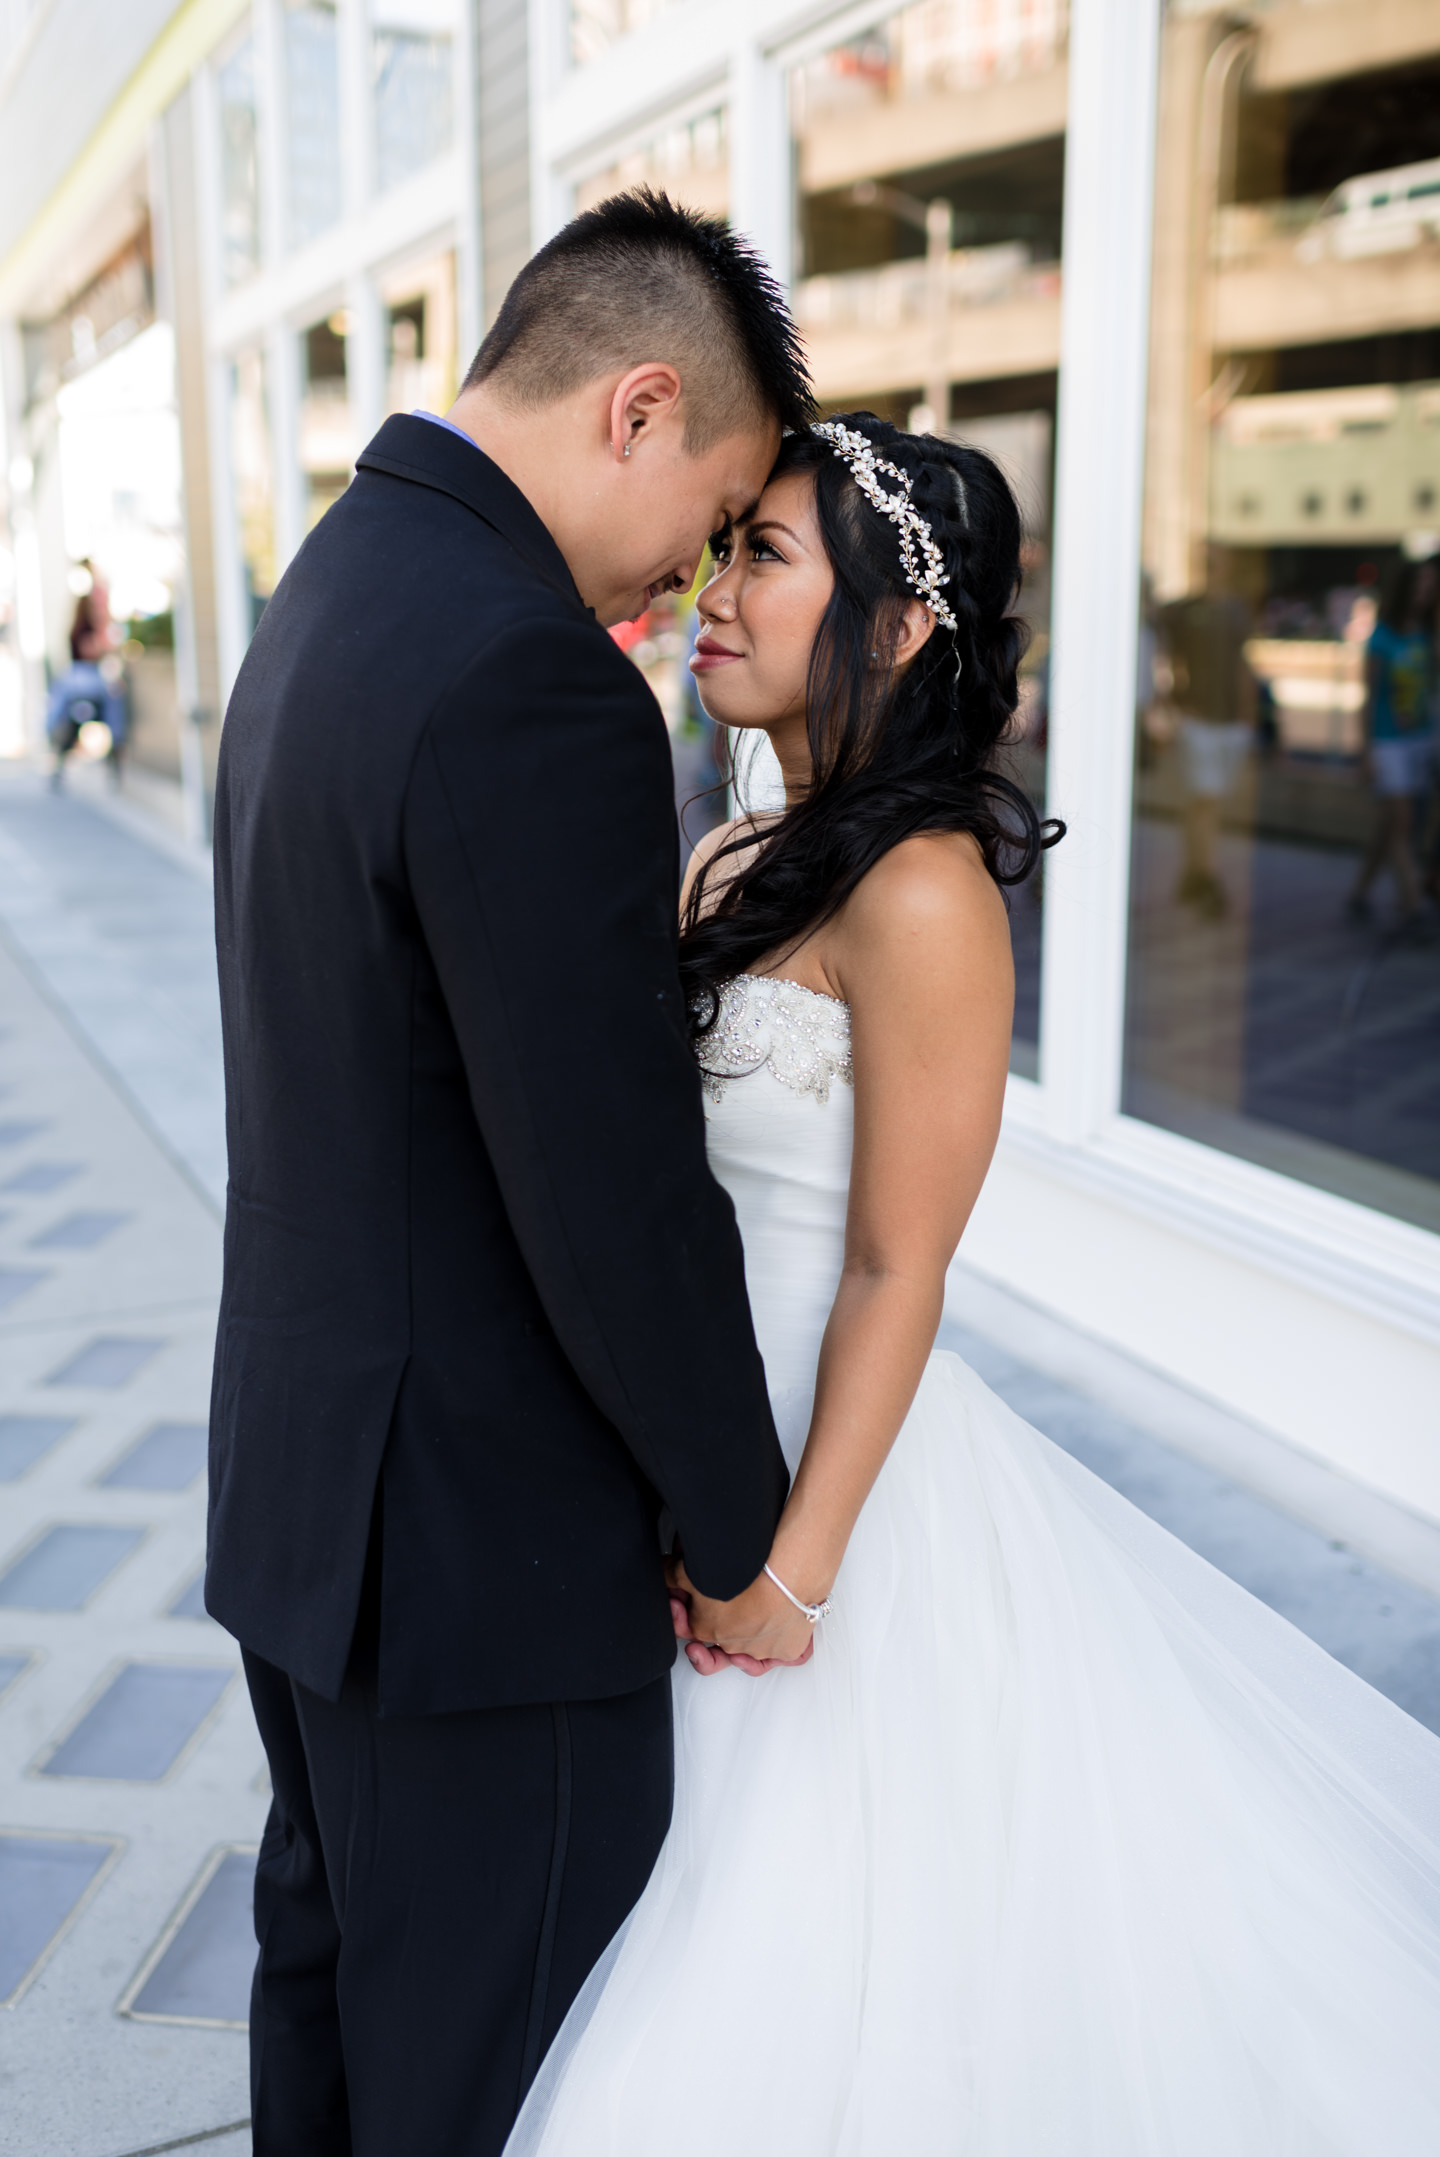 Asian Bride and Groom Romantic Wedding Portrait at Seattle Water